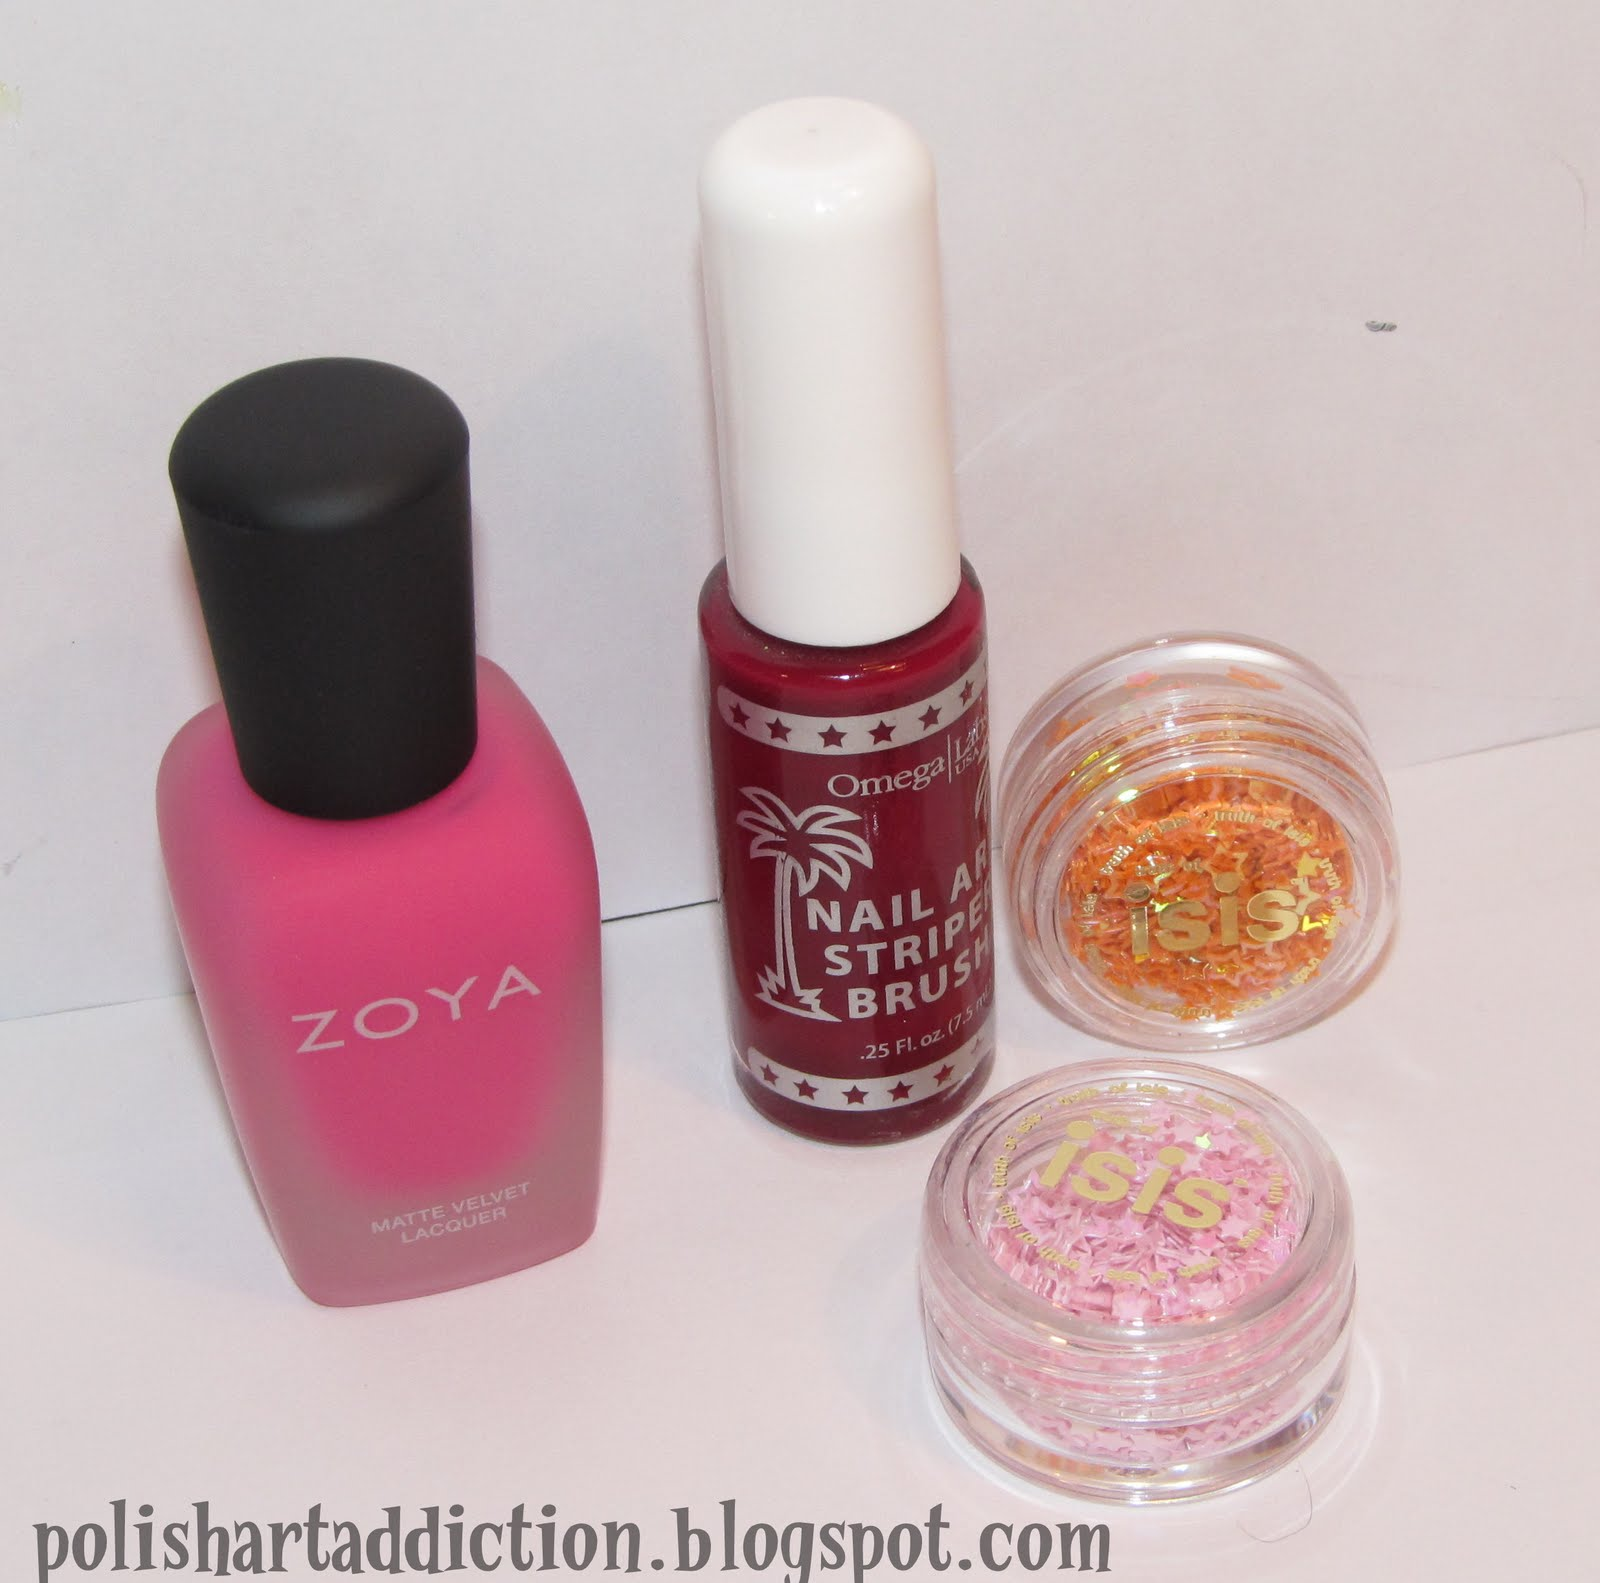 NaildeRoyale - Products Review